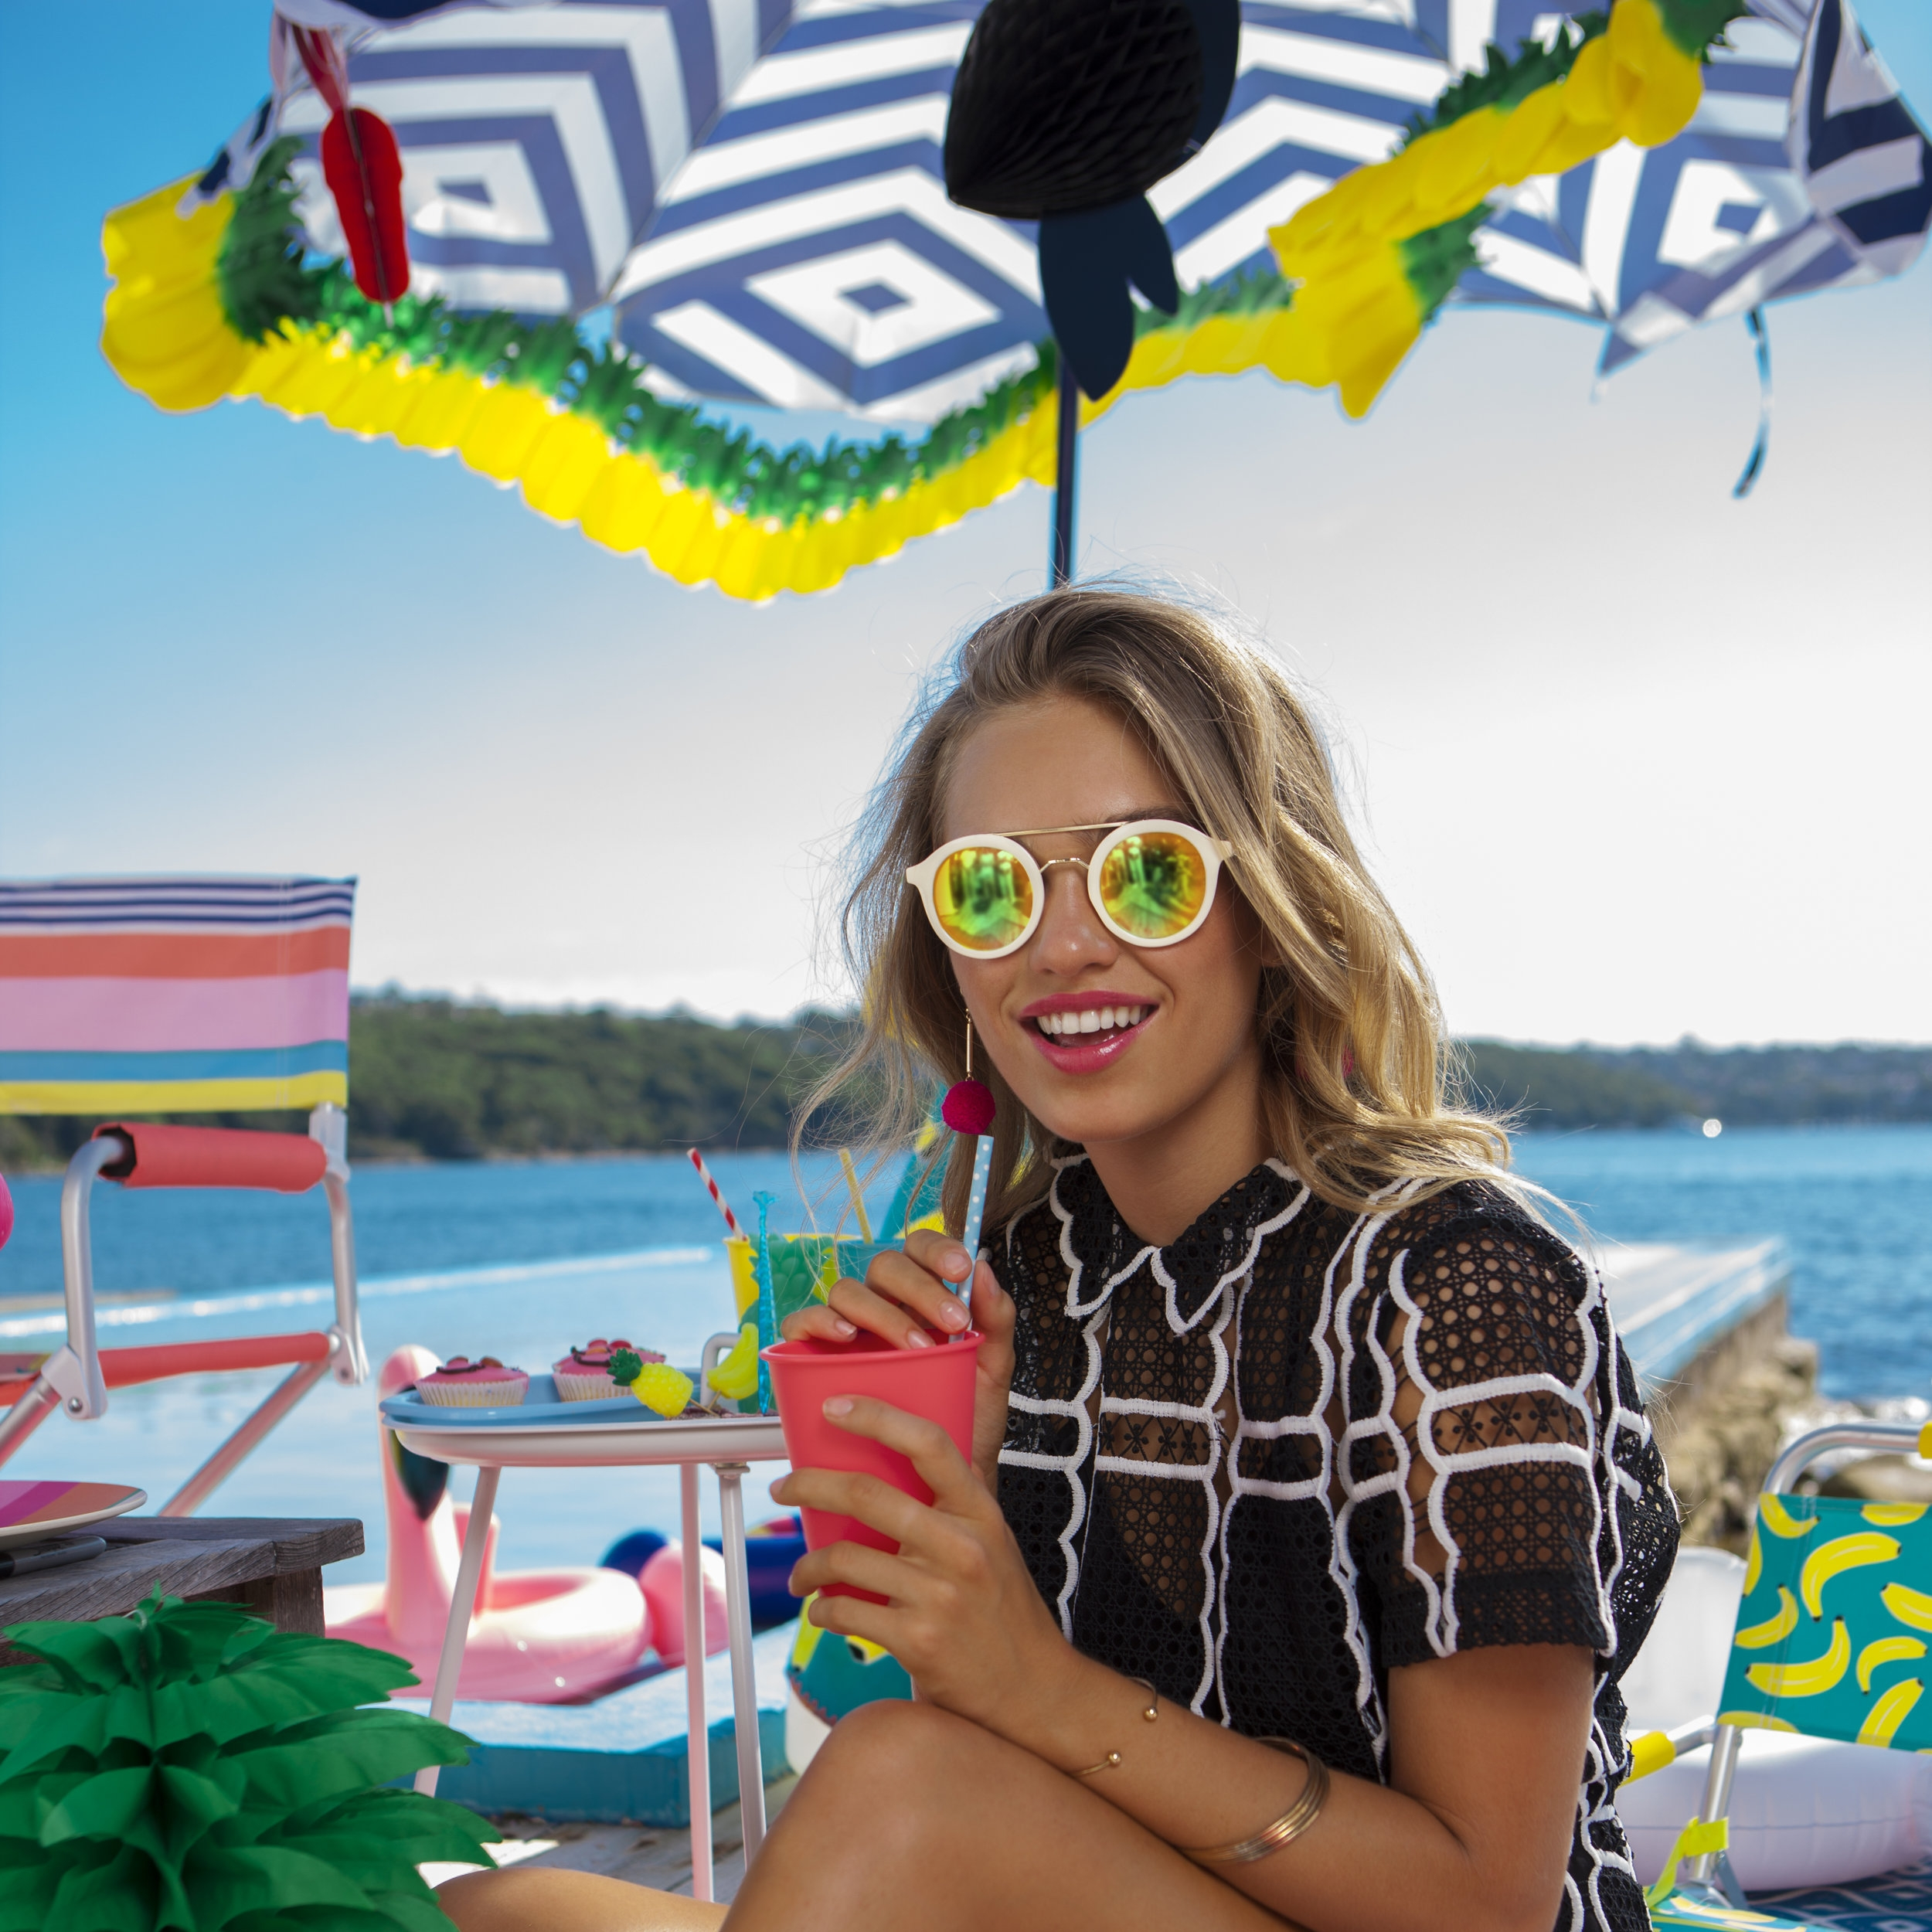 Beach Umbrellas   Keep cool and covered from the sun with fun designs twists made to the classic beach umbrella.